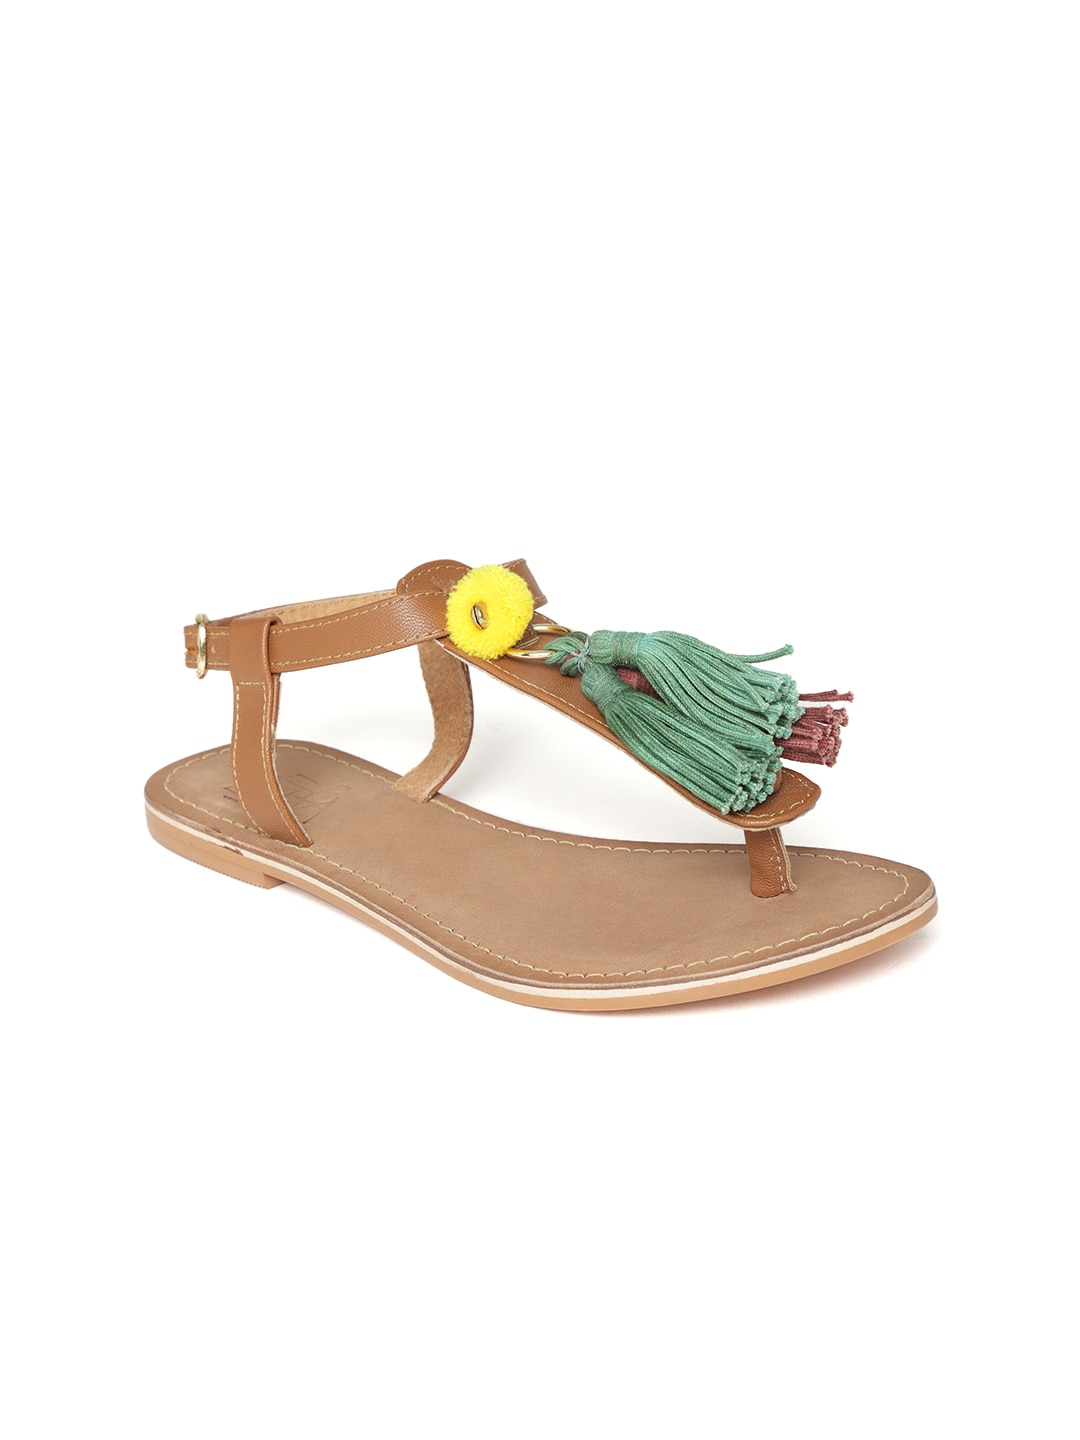 7034a546b Zebba Shoes - Buy Zebba Shoes Online in India